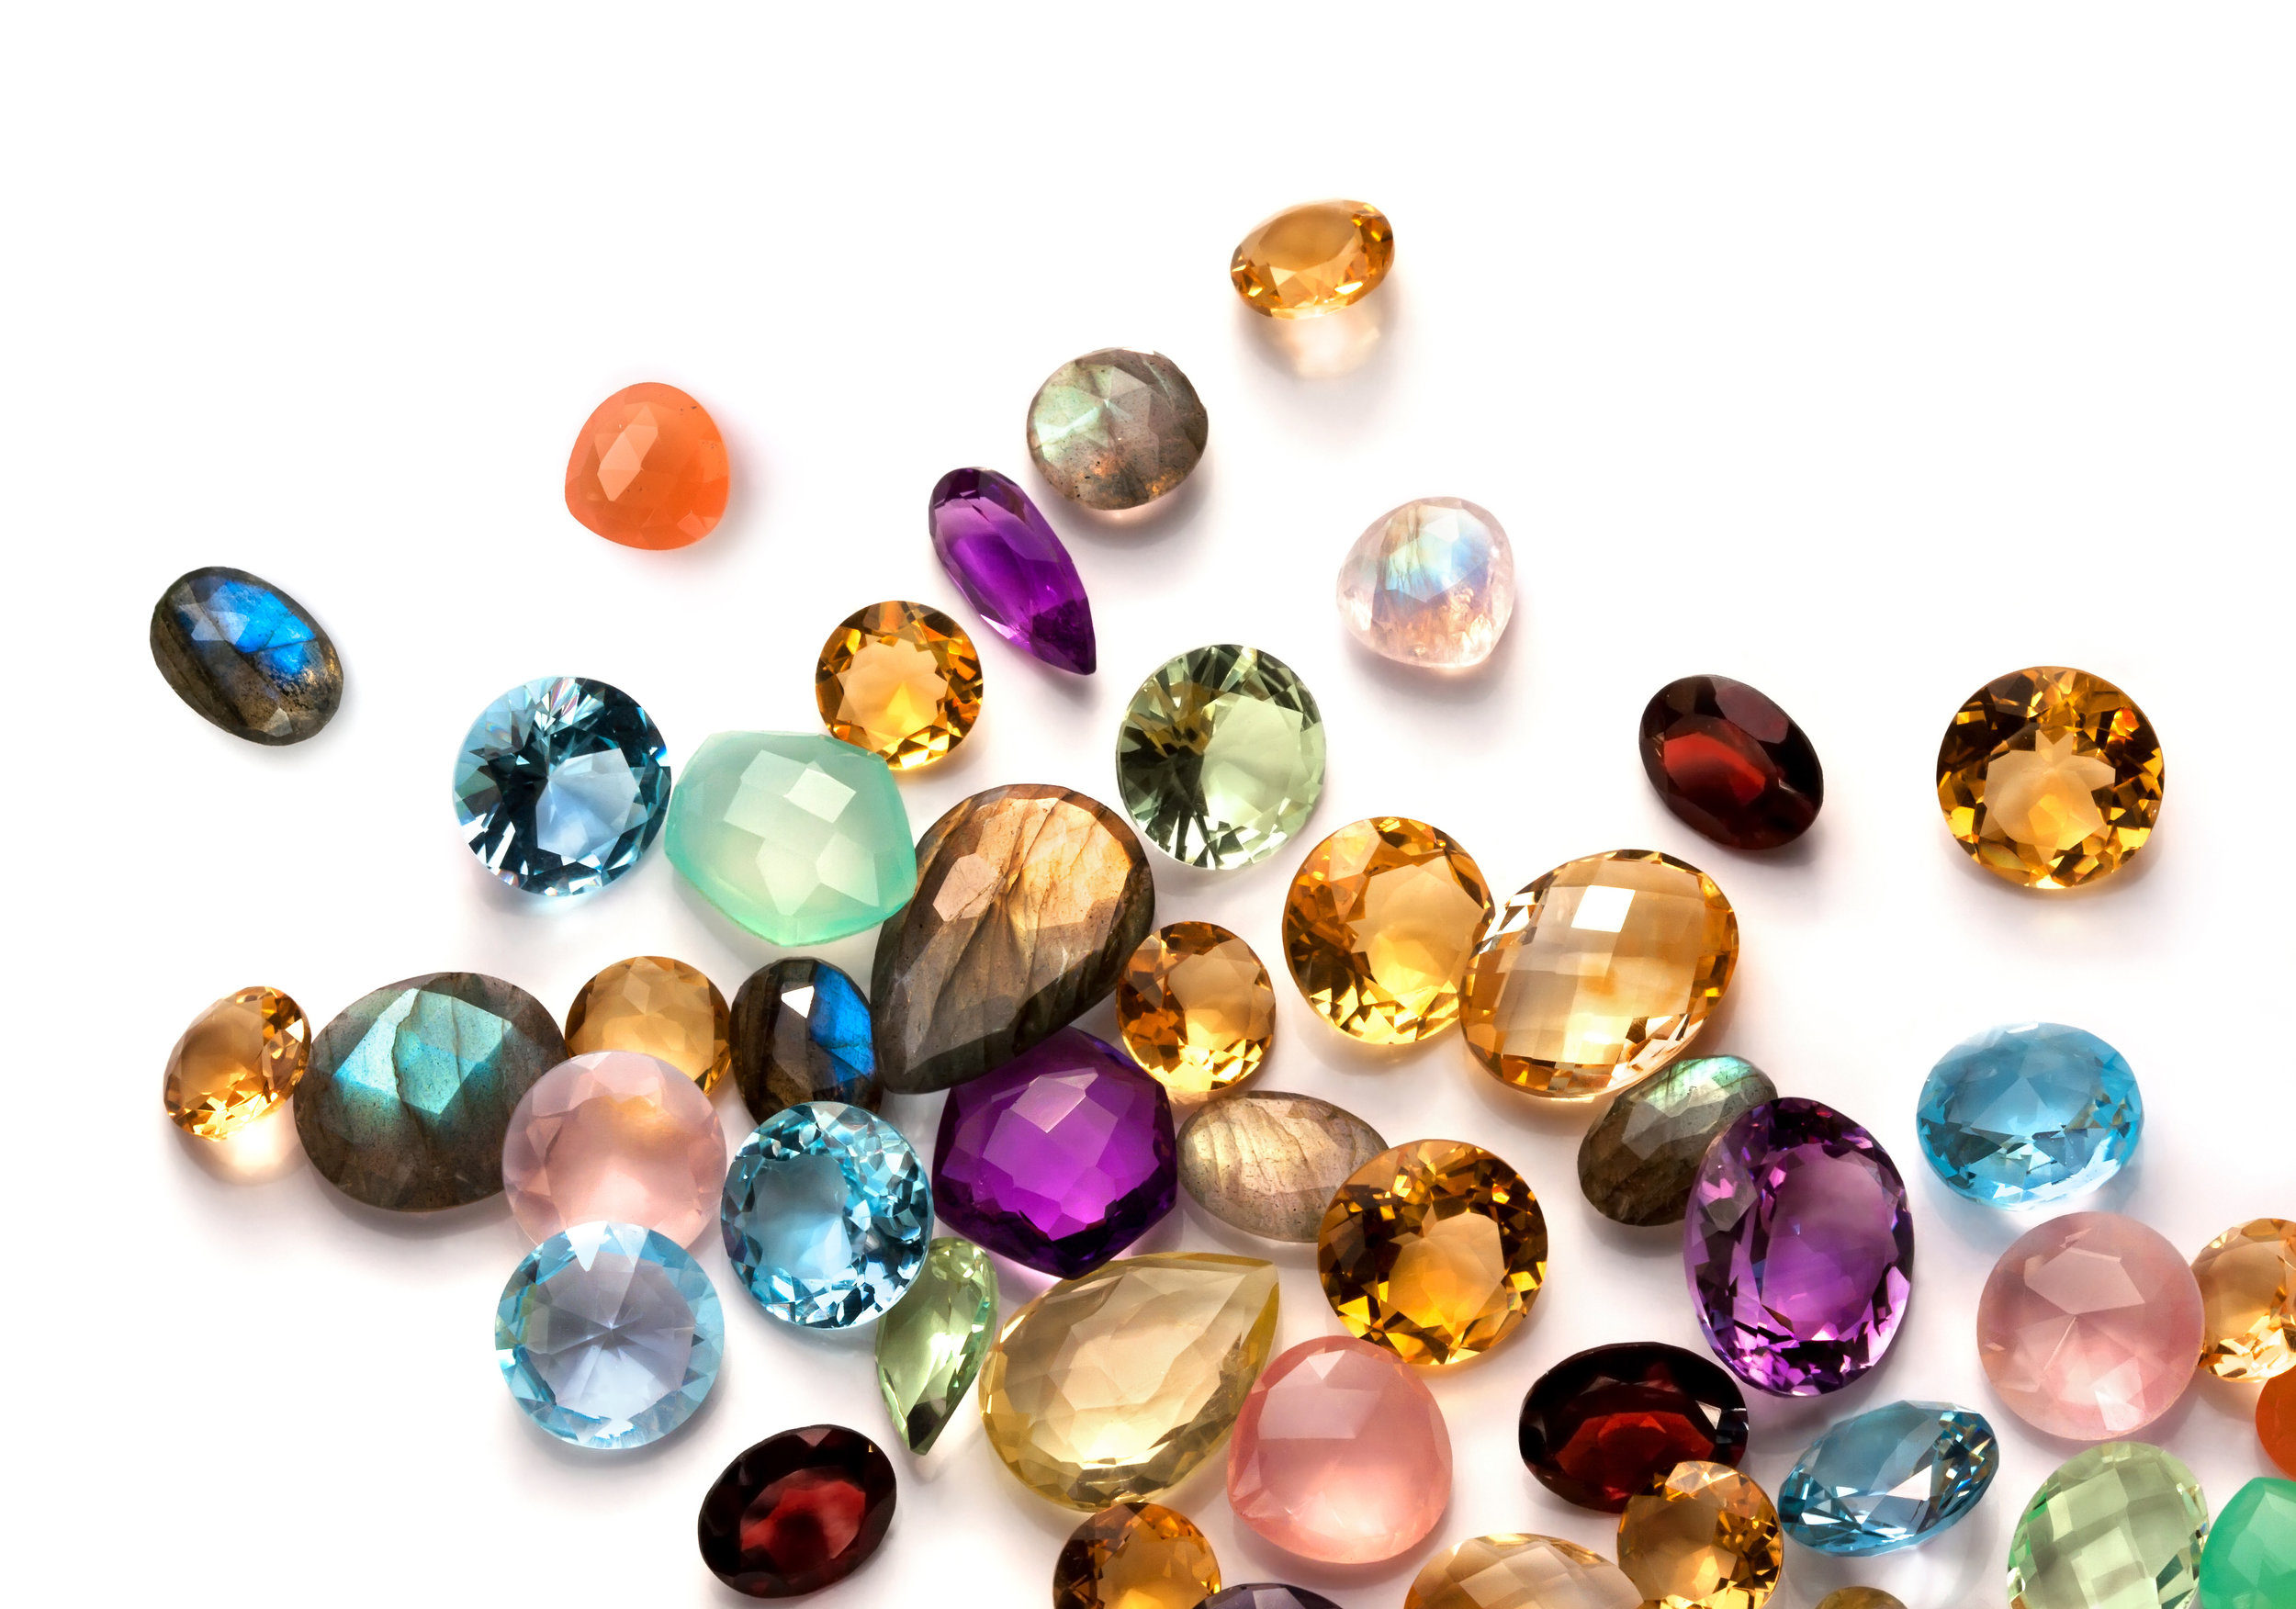 Some of the gemstones that we feature in our jewelry are Amethyst, Aquamarine, Citrine, Emerald, Garnet, Morganite, Opal, Peridot, Ruby, Sapphire, Tanzanite, Topaz, Tourmaline, Turquoise.